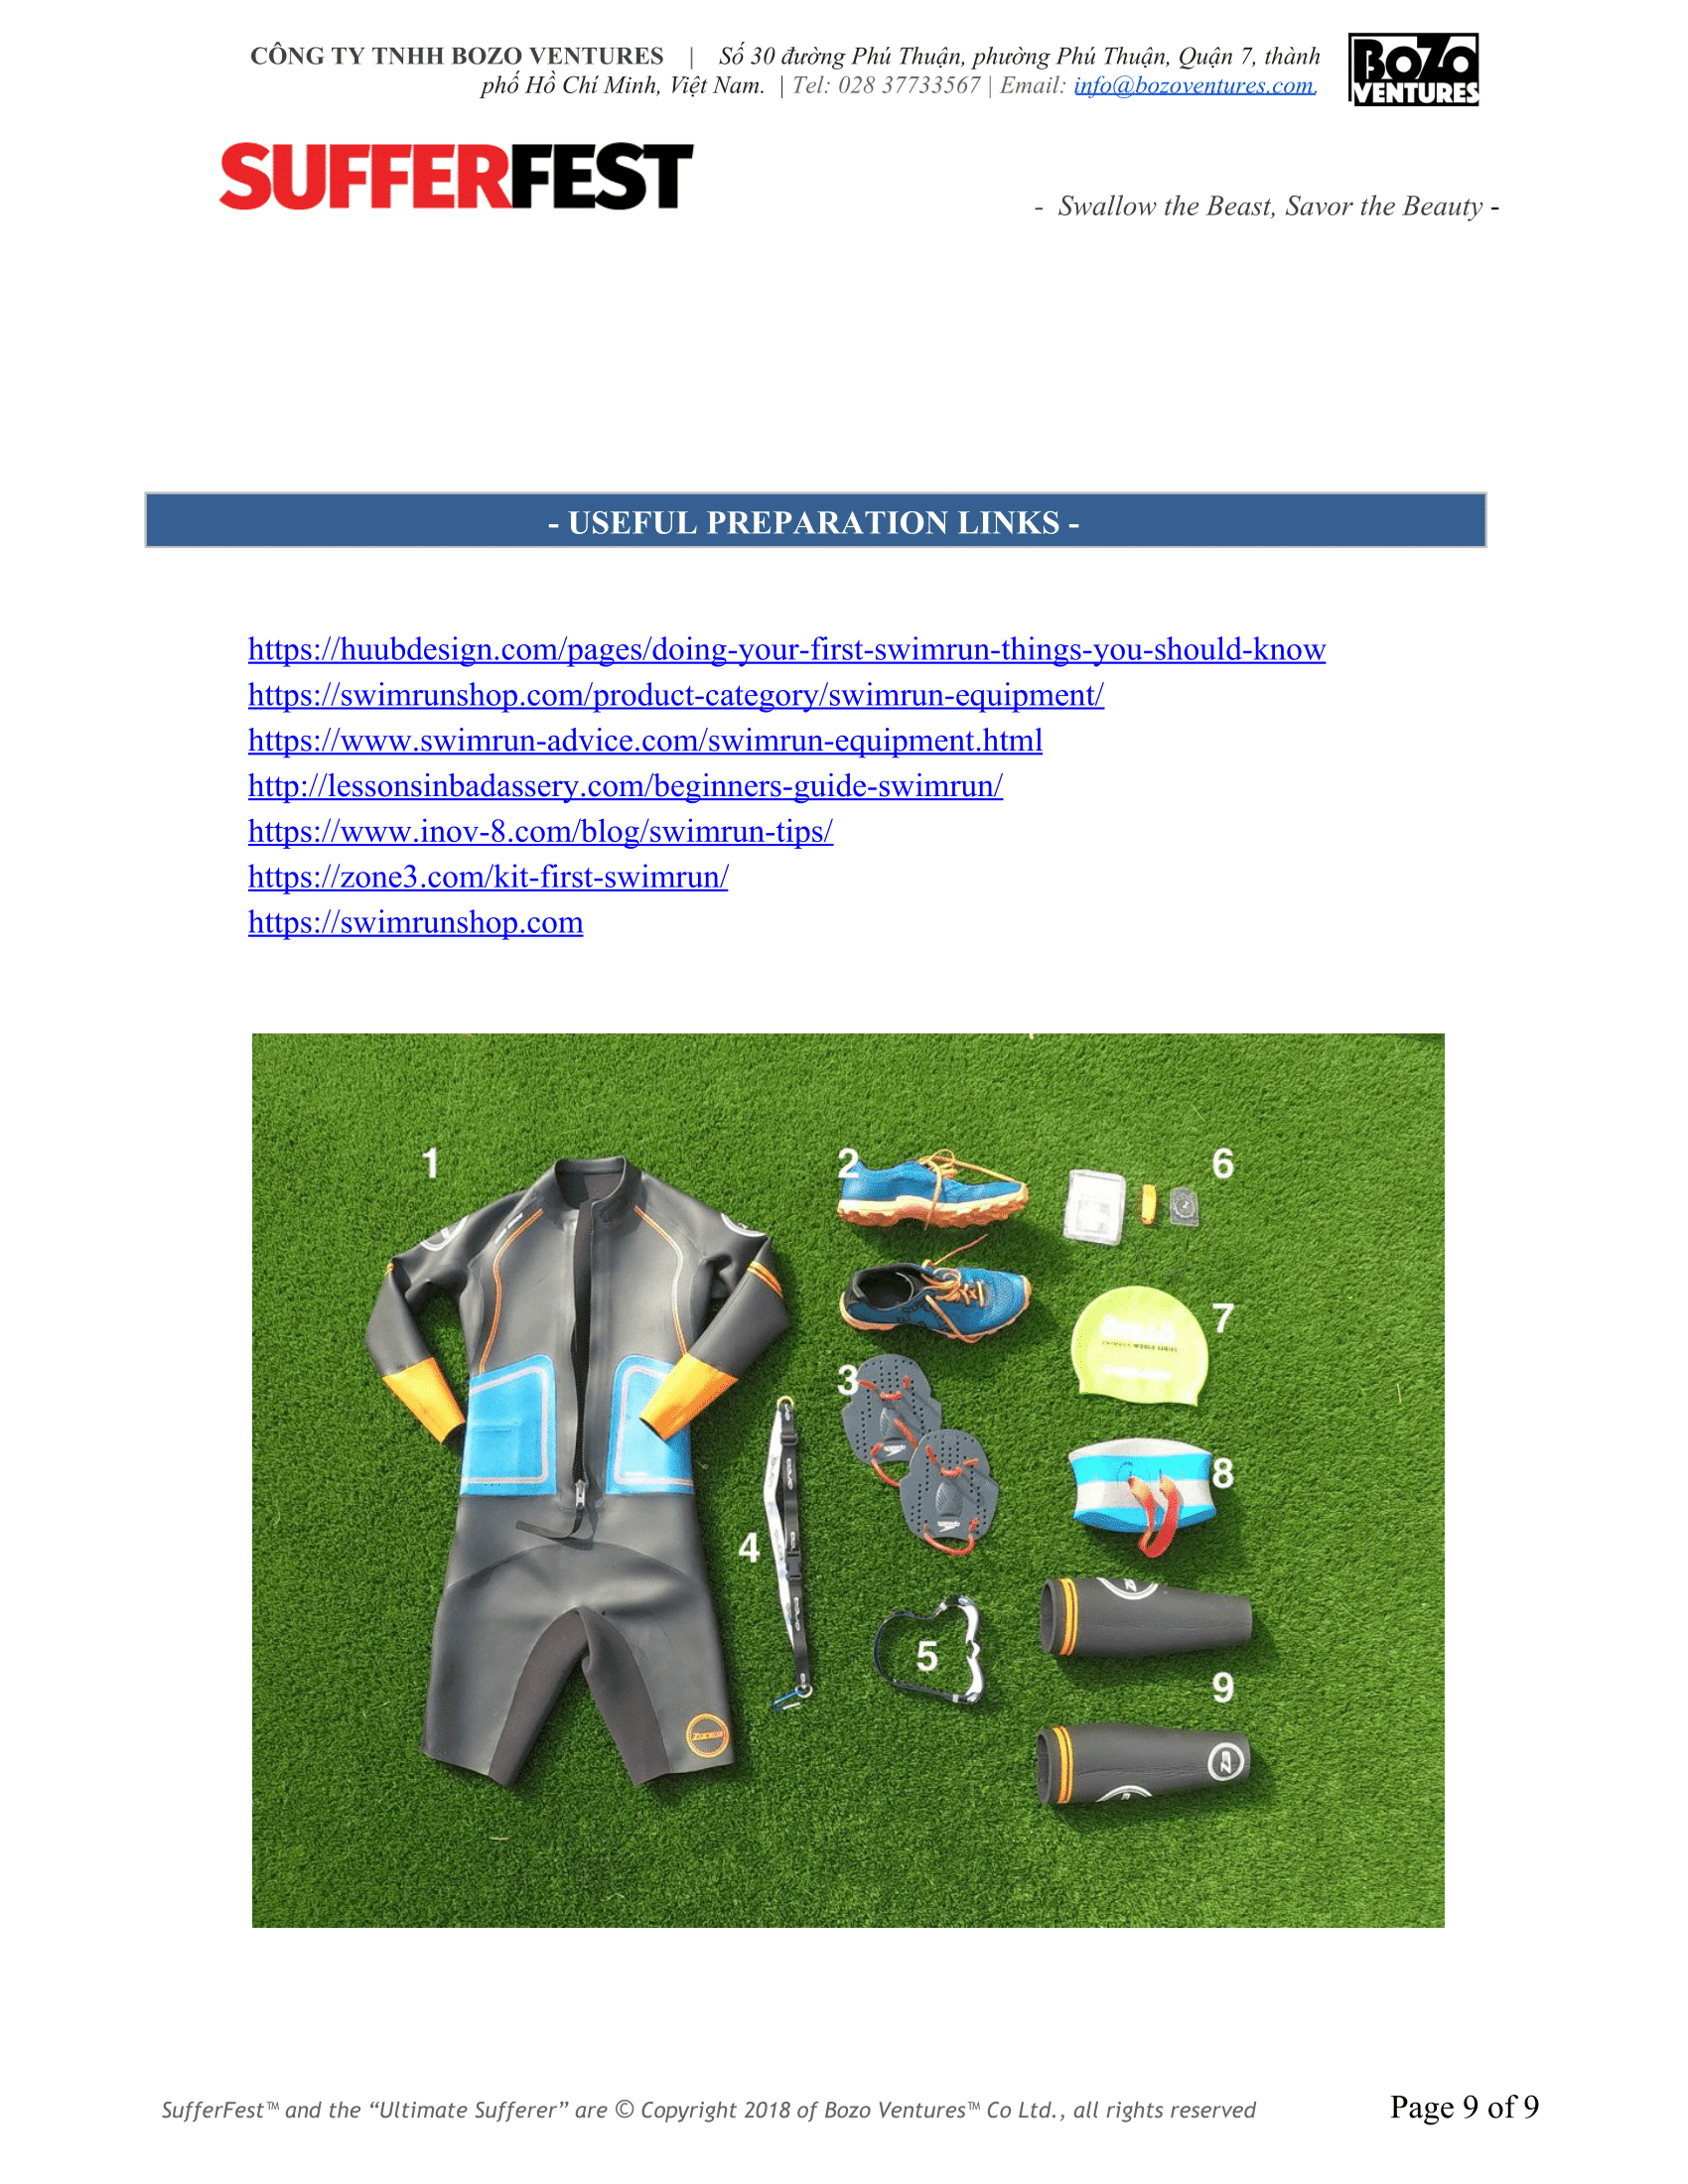 [ENG] SufferFest™ - SwimRun Gear Guide -9.png